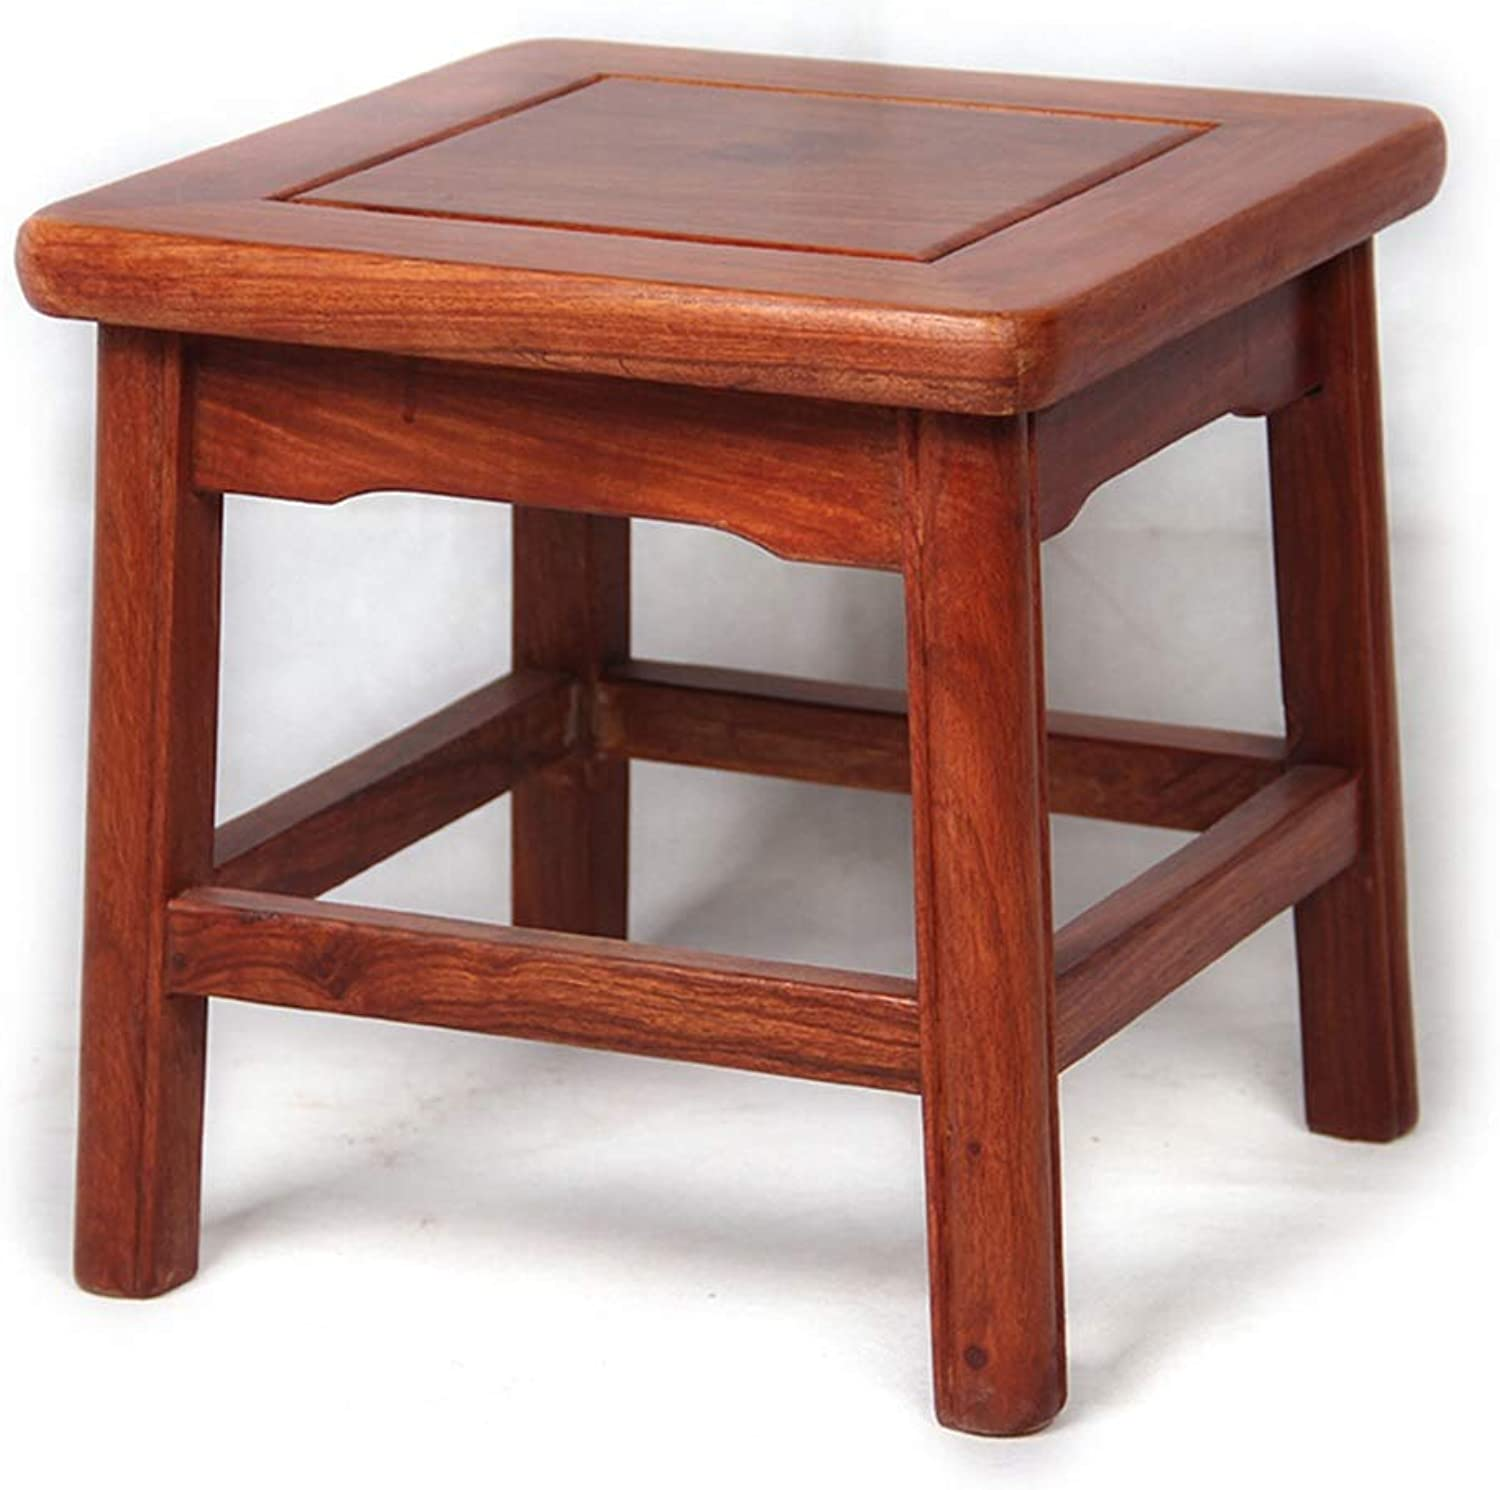 Footstool Solid Wood Square Stool Change shoes Stool Small Stool Living Room Adult Home Sofa Stool Wood Bench Living Room Small Bench